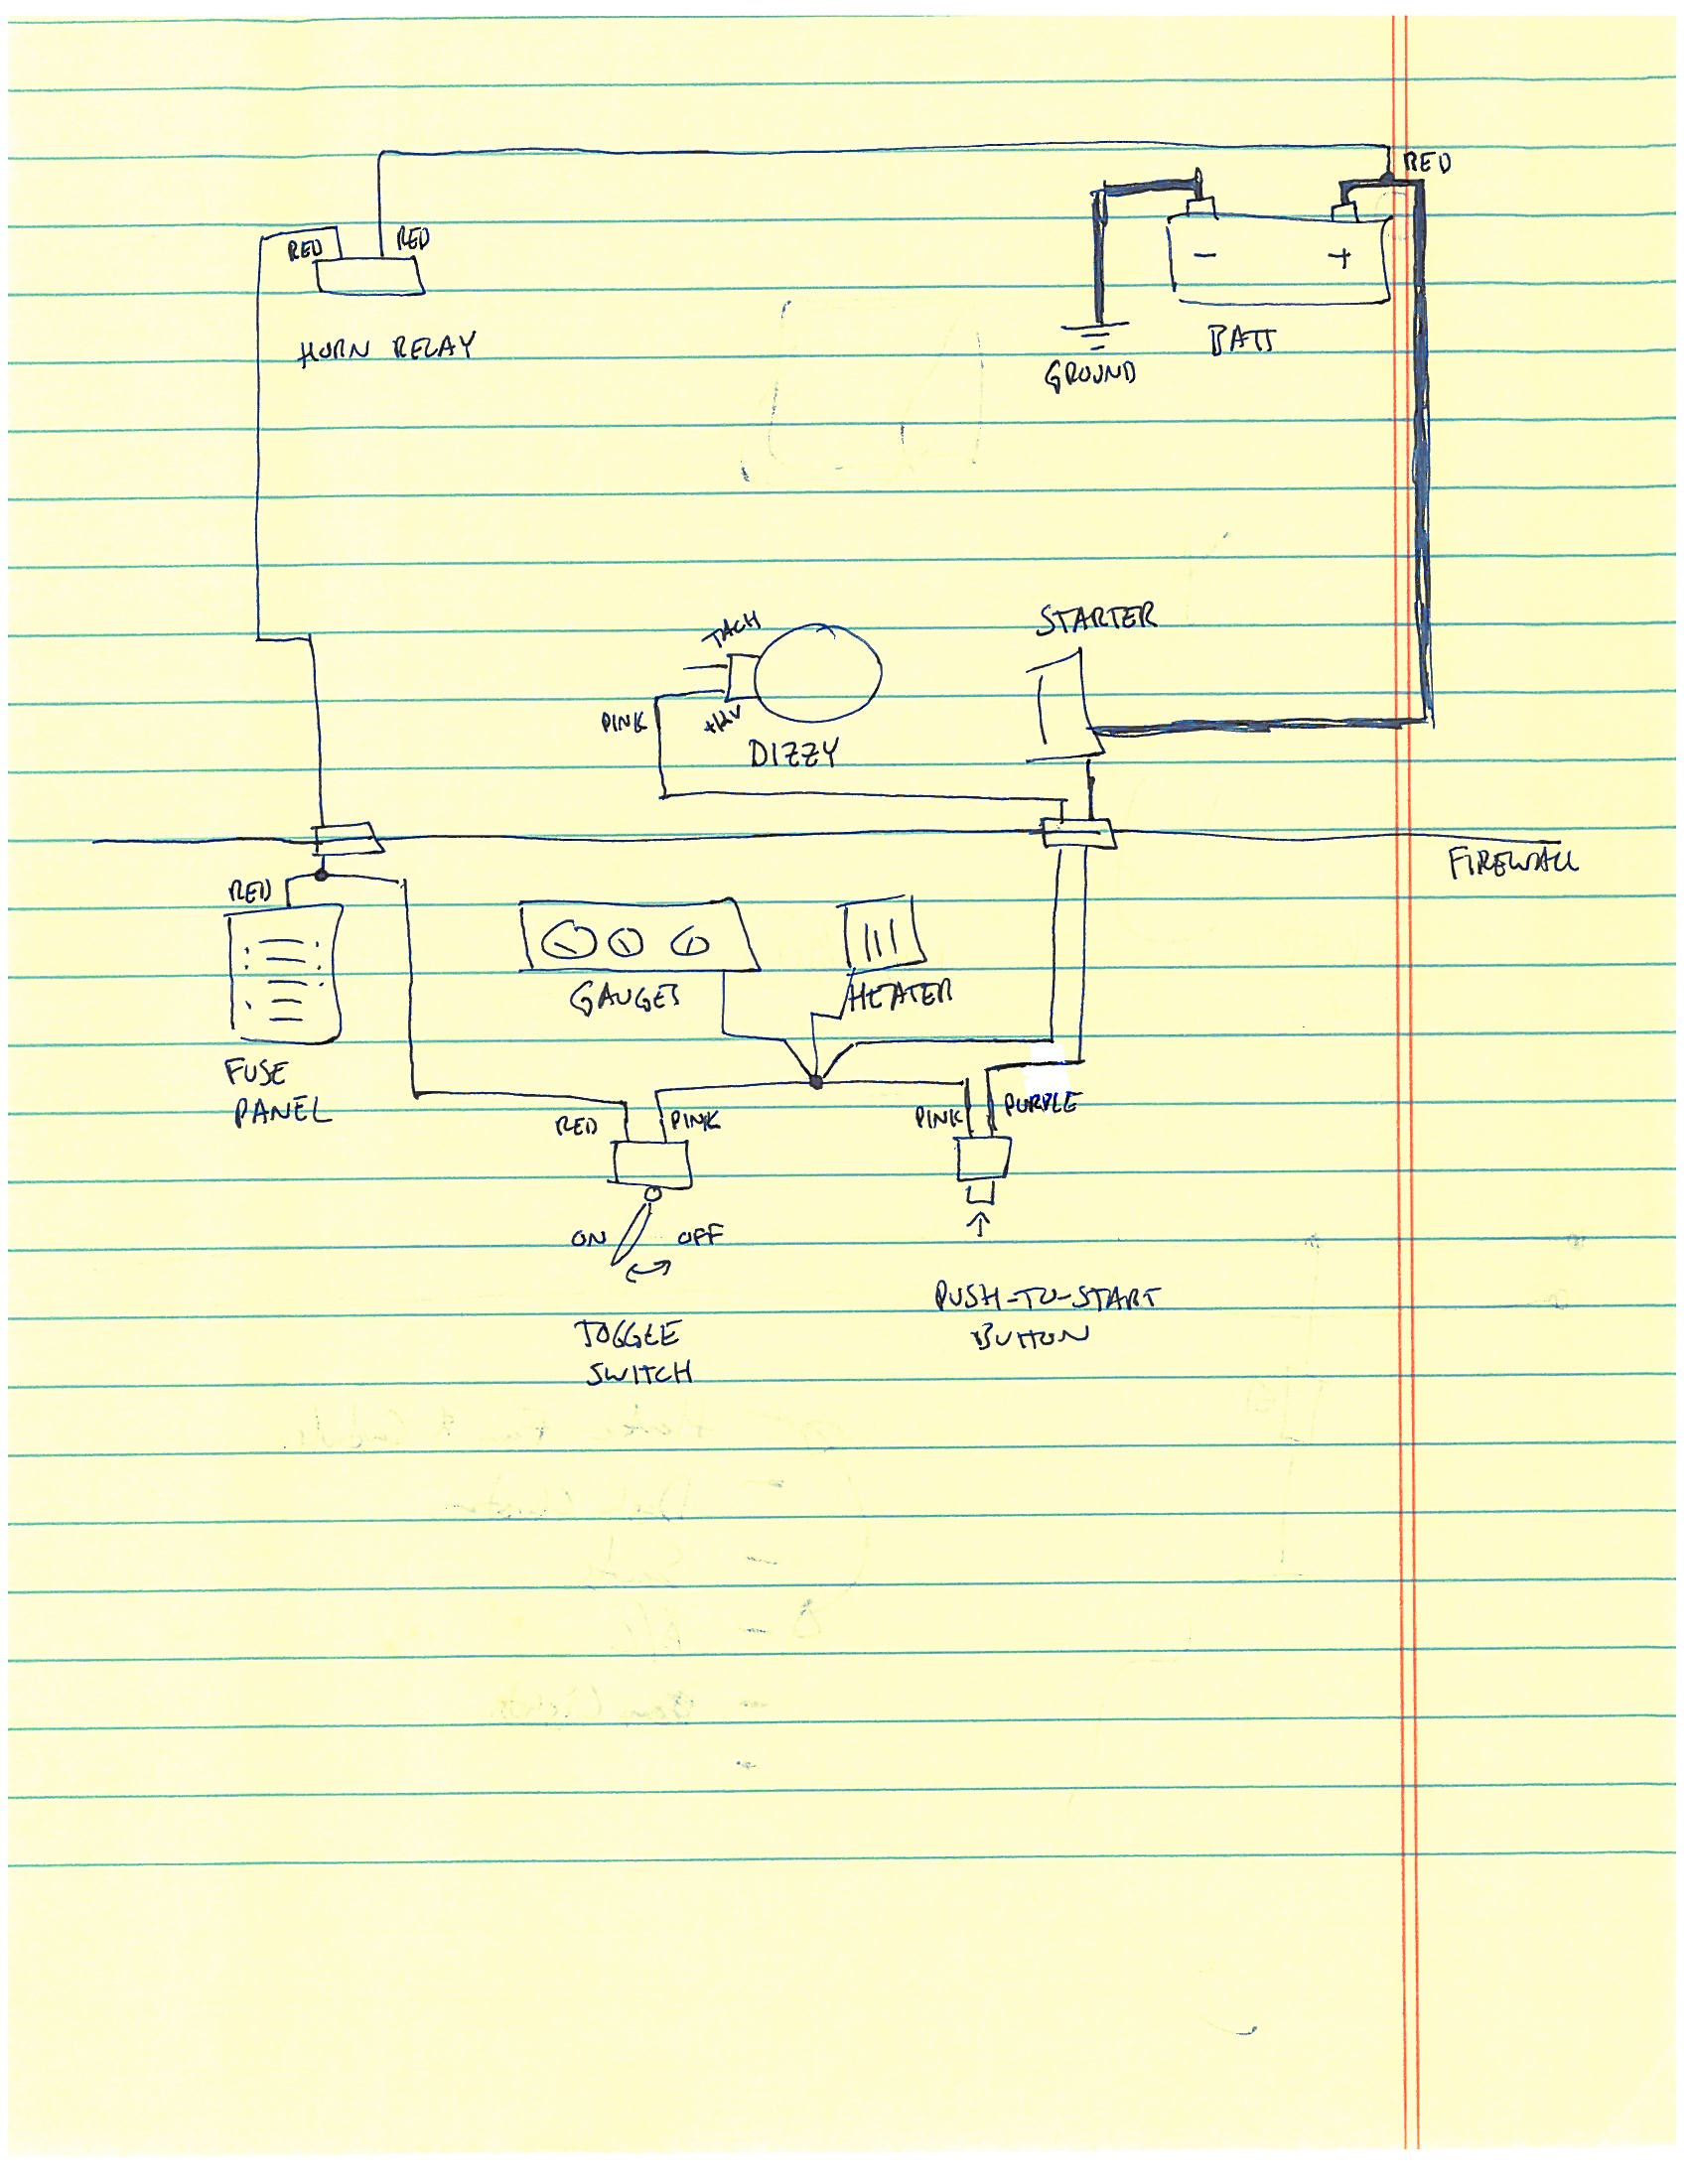 1966 Chevy Truck Heater Wiring - Wiring Diagram Section on